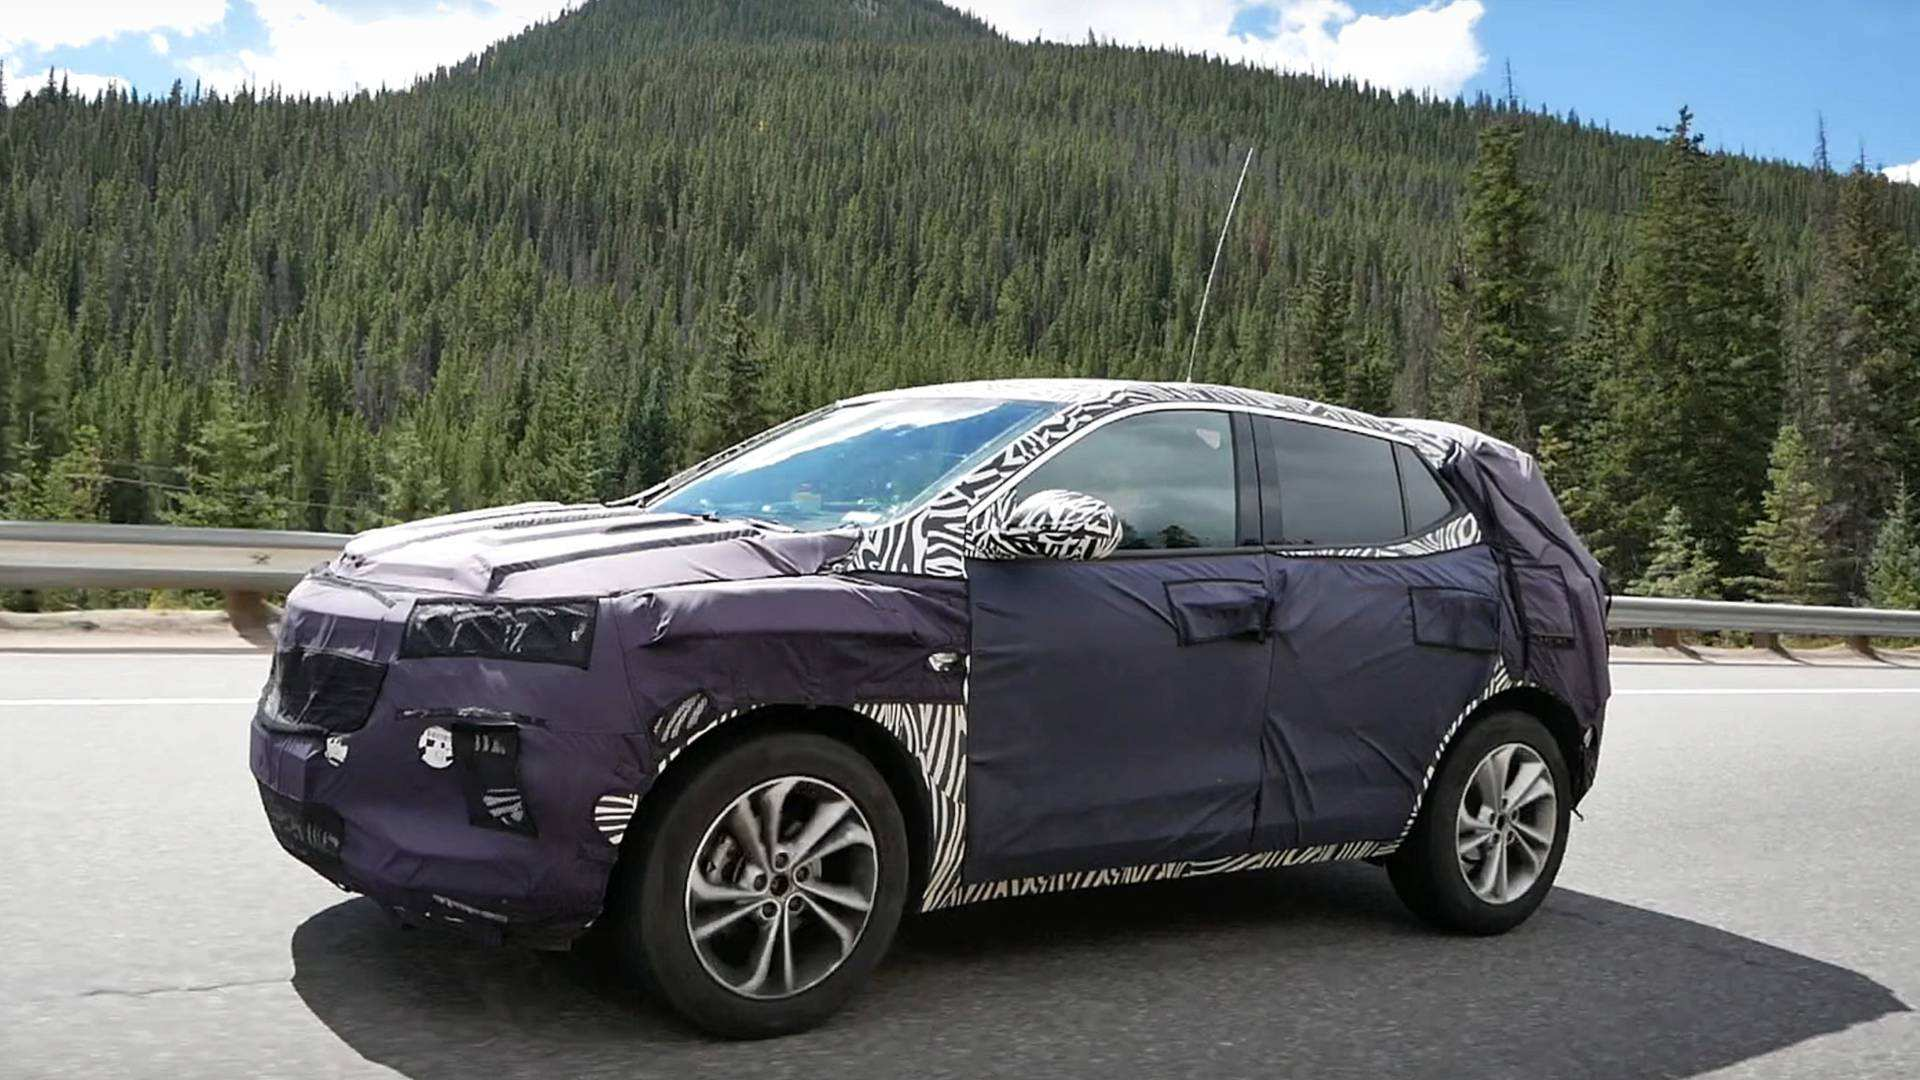 36 New 2020 Buick Enclave Spy Photos Images by 2020 Buick Enclave Spy Photos